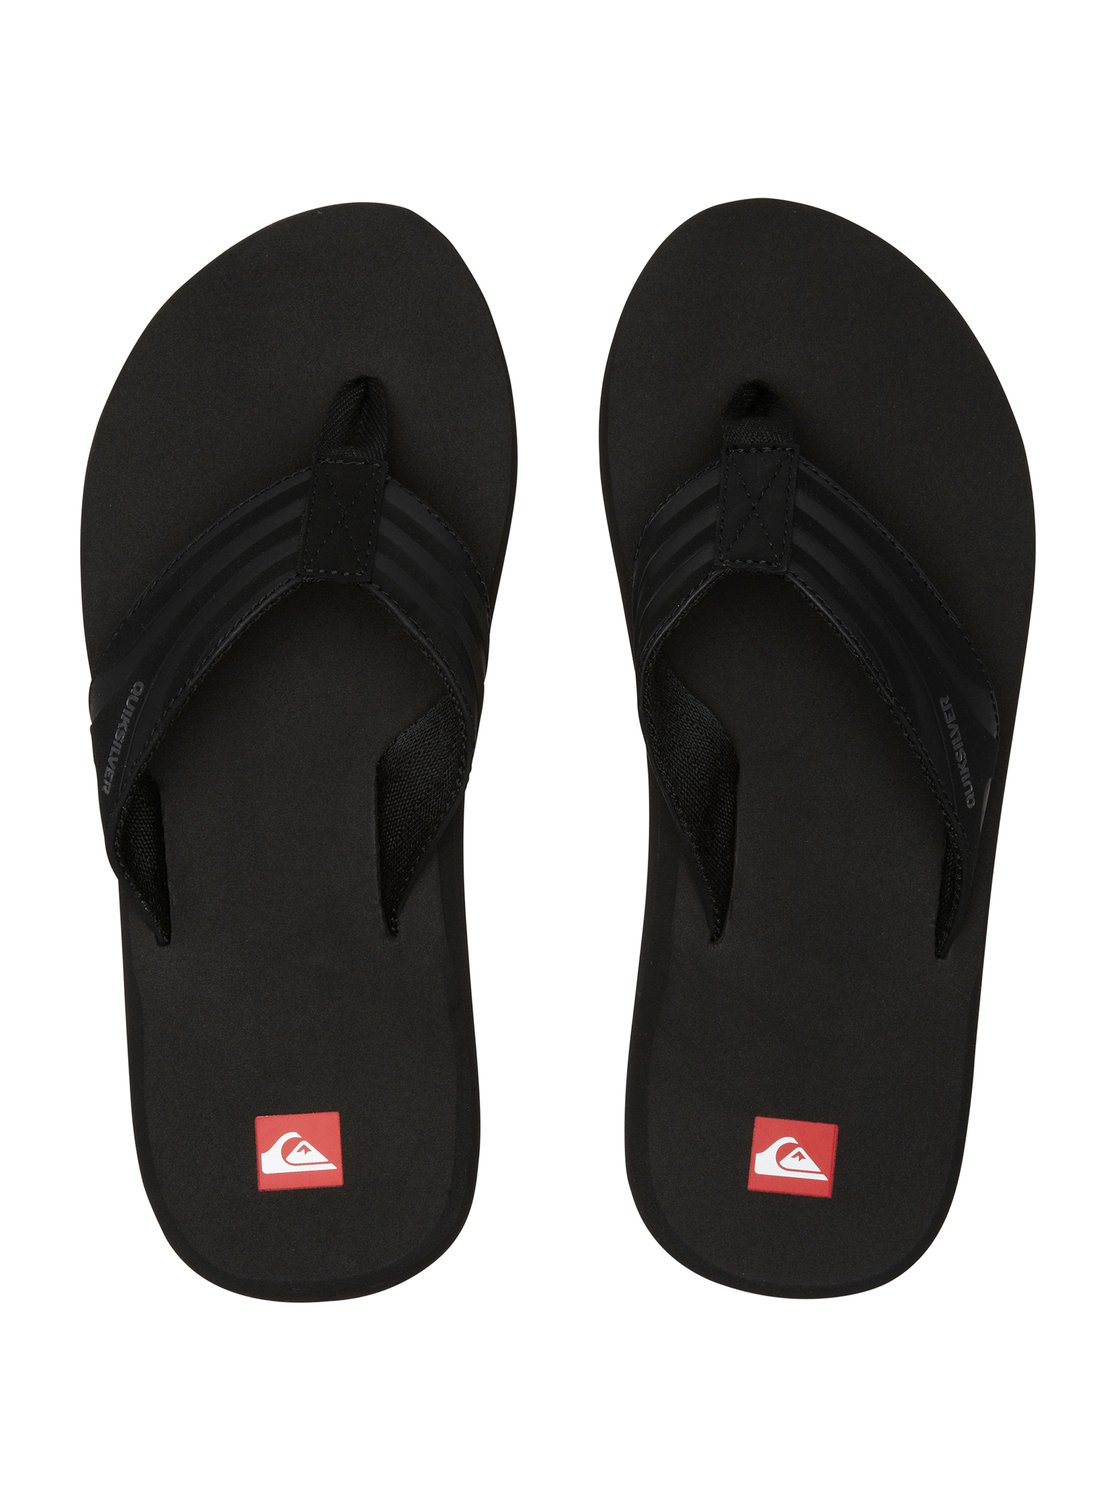 0ad24835db1 4 Monkey Wrench Sandals 857339 Quiksilver